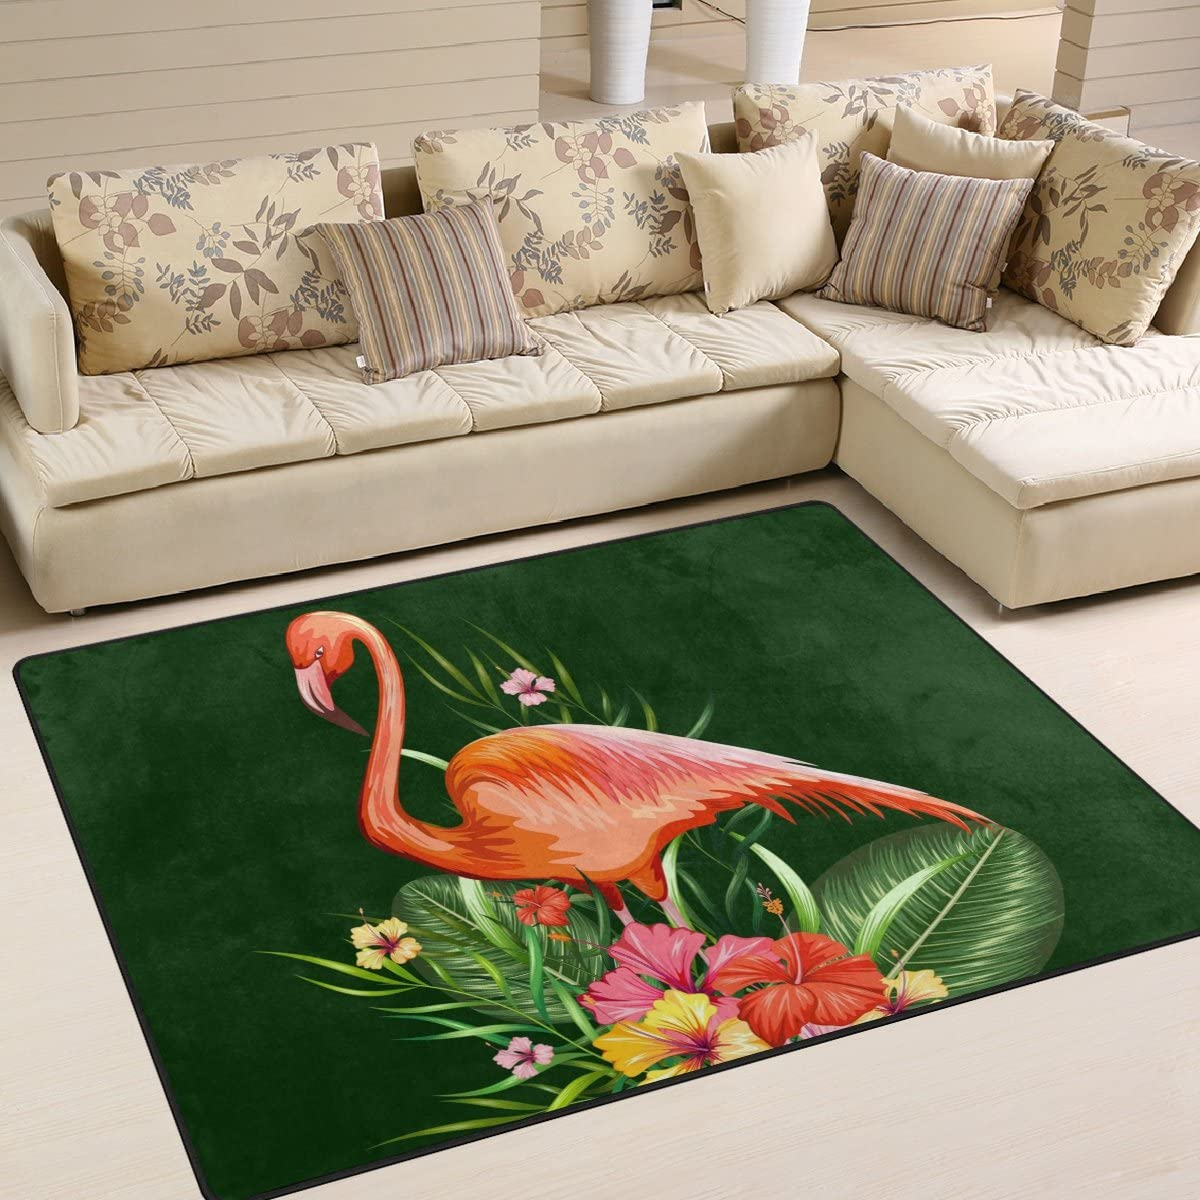 SAVSV Flamingo and Tropical Flower Pattern Printed Large Area Rugs,Lightweight Floor Carpet Use